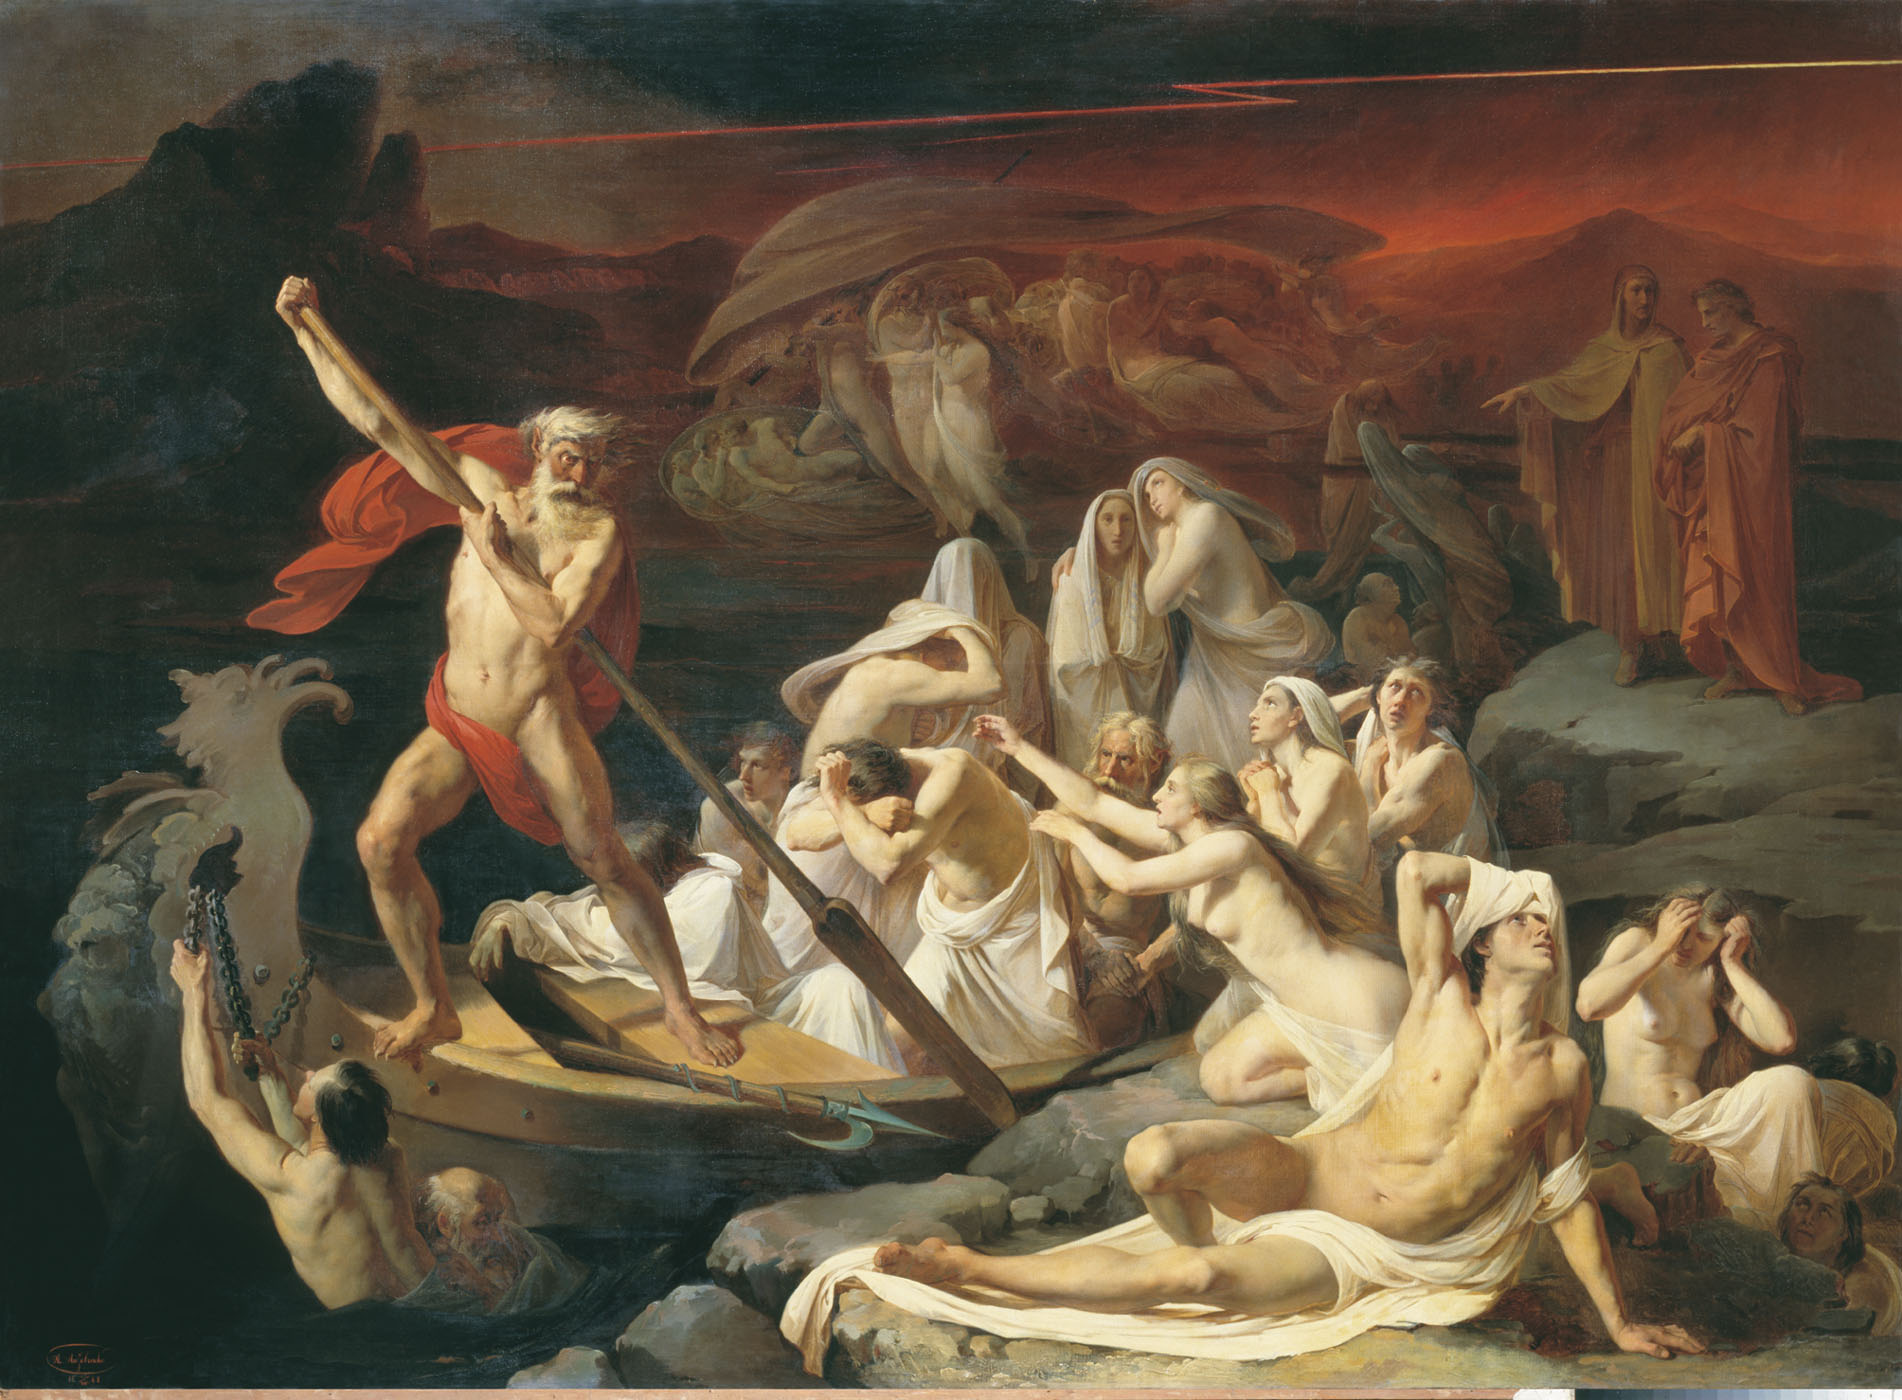 A 19th-century interpretation of Charon's crossing by Alexander Litovchenko.